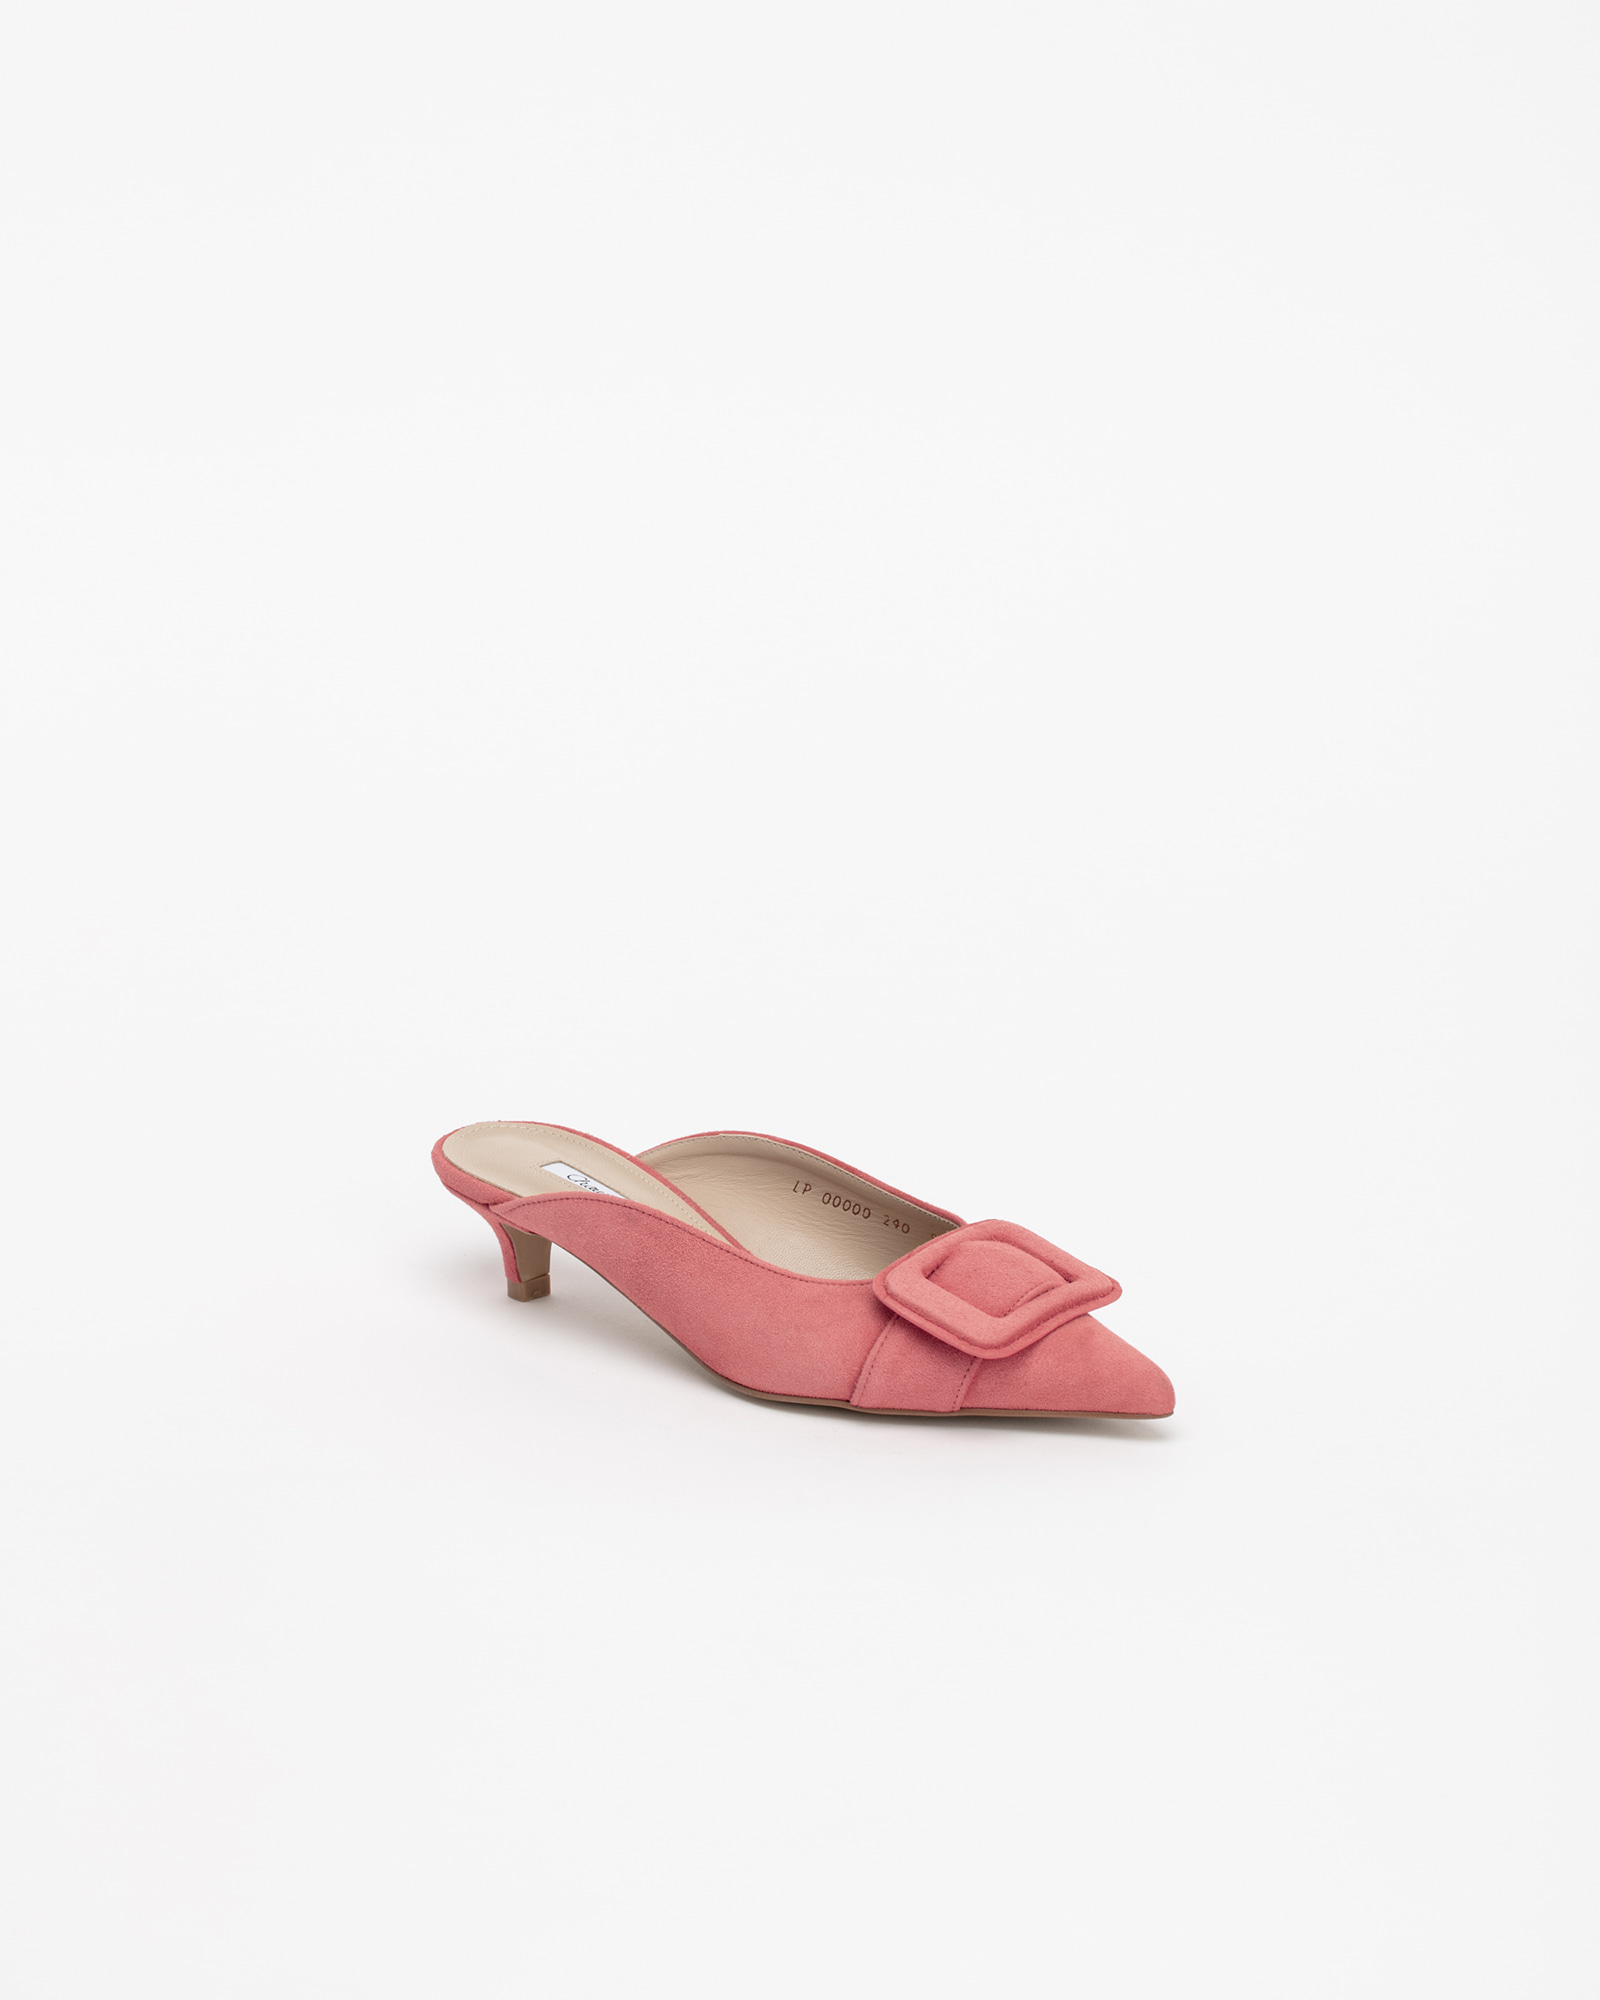 Shanon Mules in Coral Pink Suede